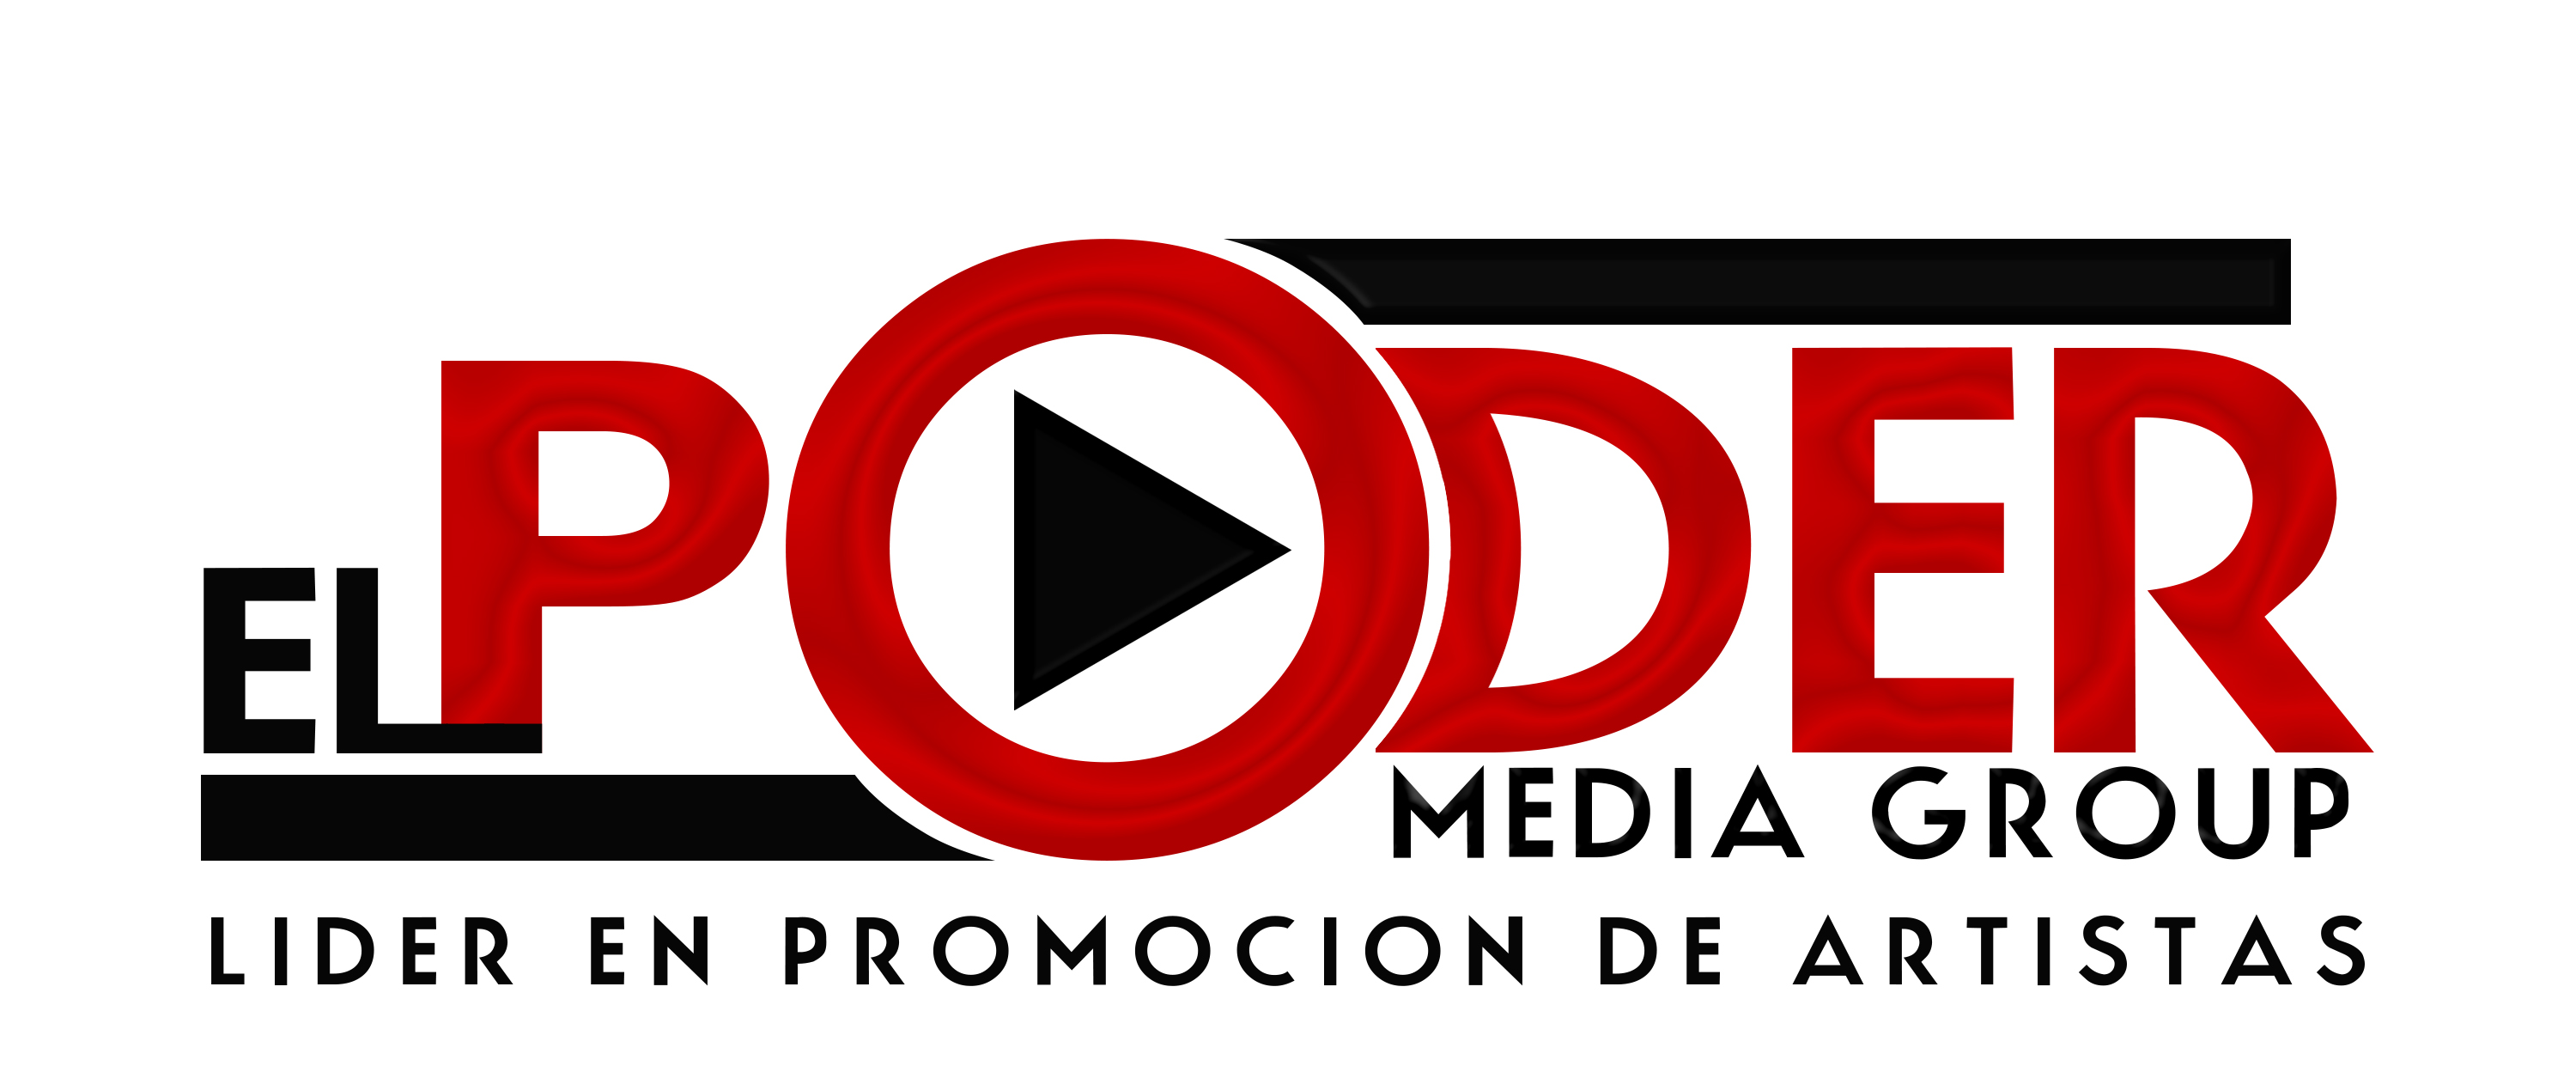 el-poder-media-group-jpg